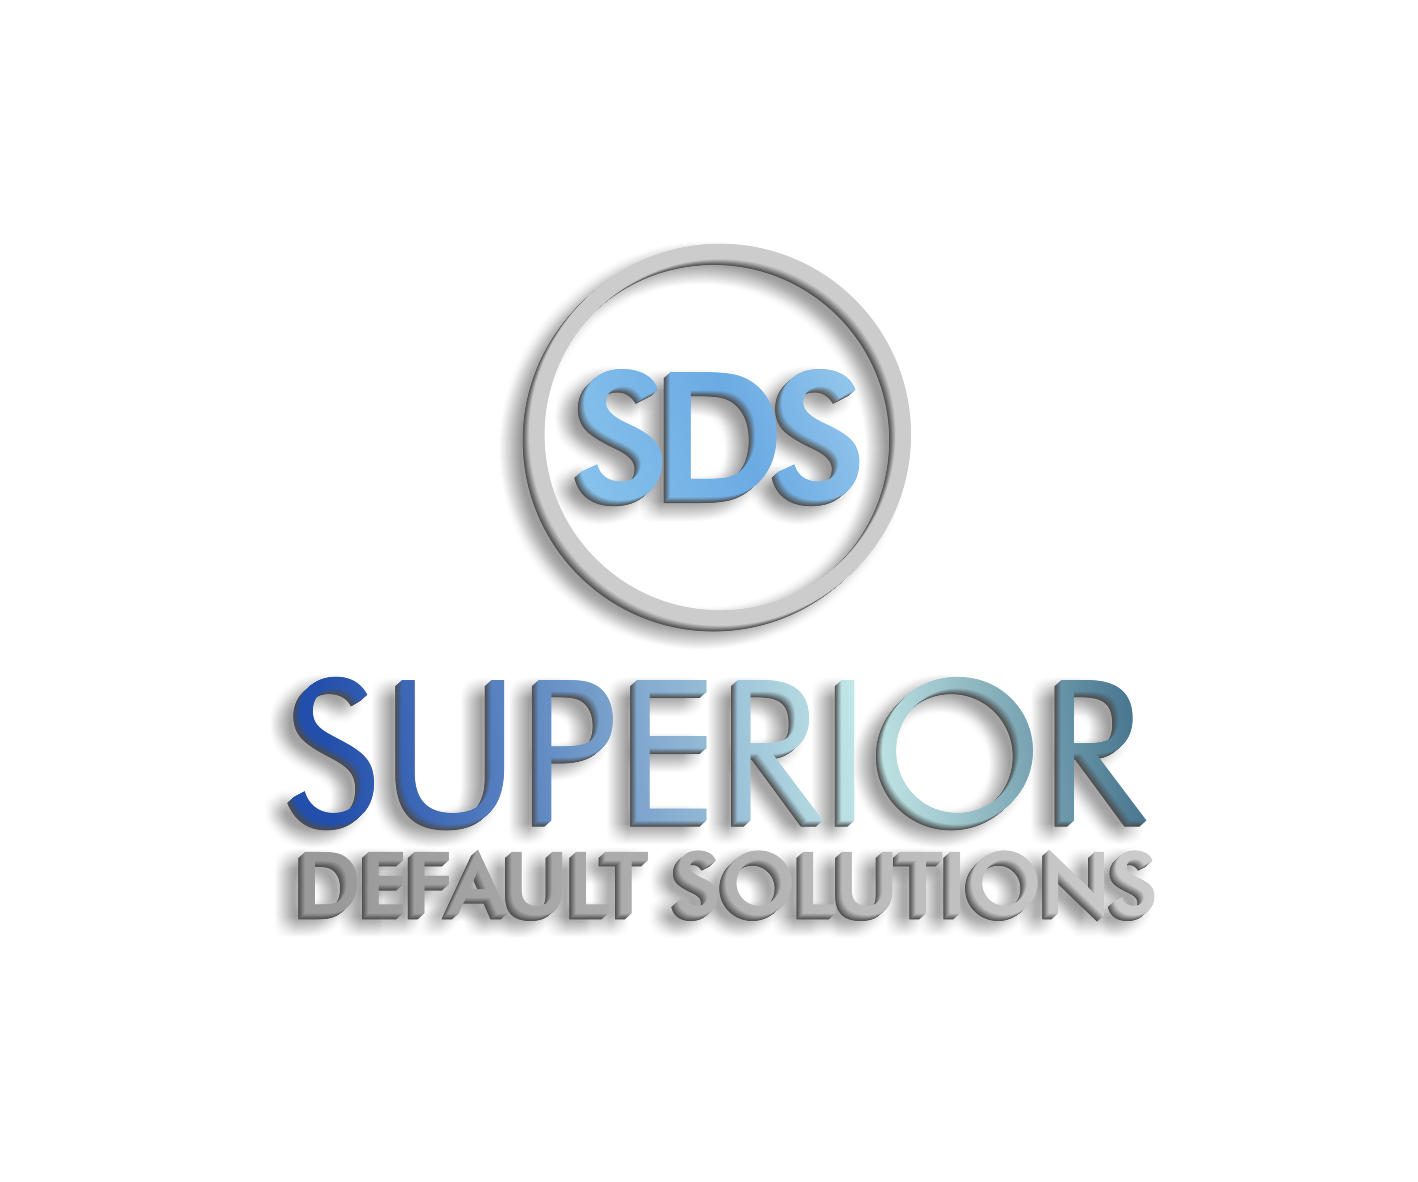 LOS ANGELES BUSINESSMAN LAUNCHES DEBT SOLUTION COMPANY TO ASSIST IN DEBT COLLECTION Superior Default Solutions (SDS) Begins With A Personal Touch